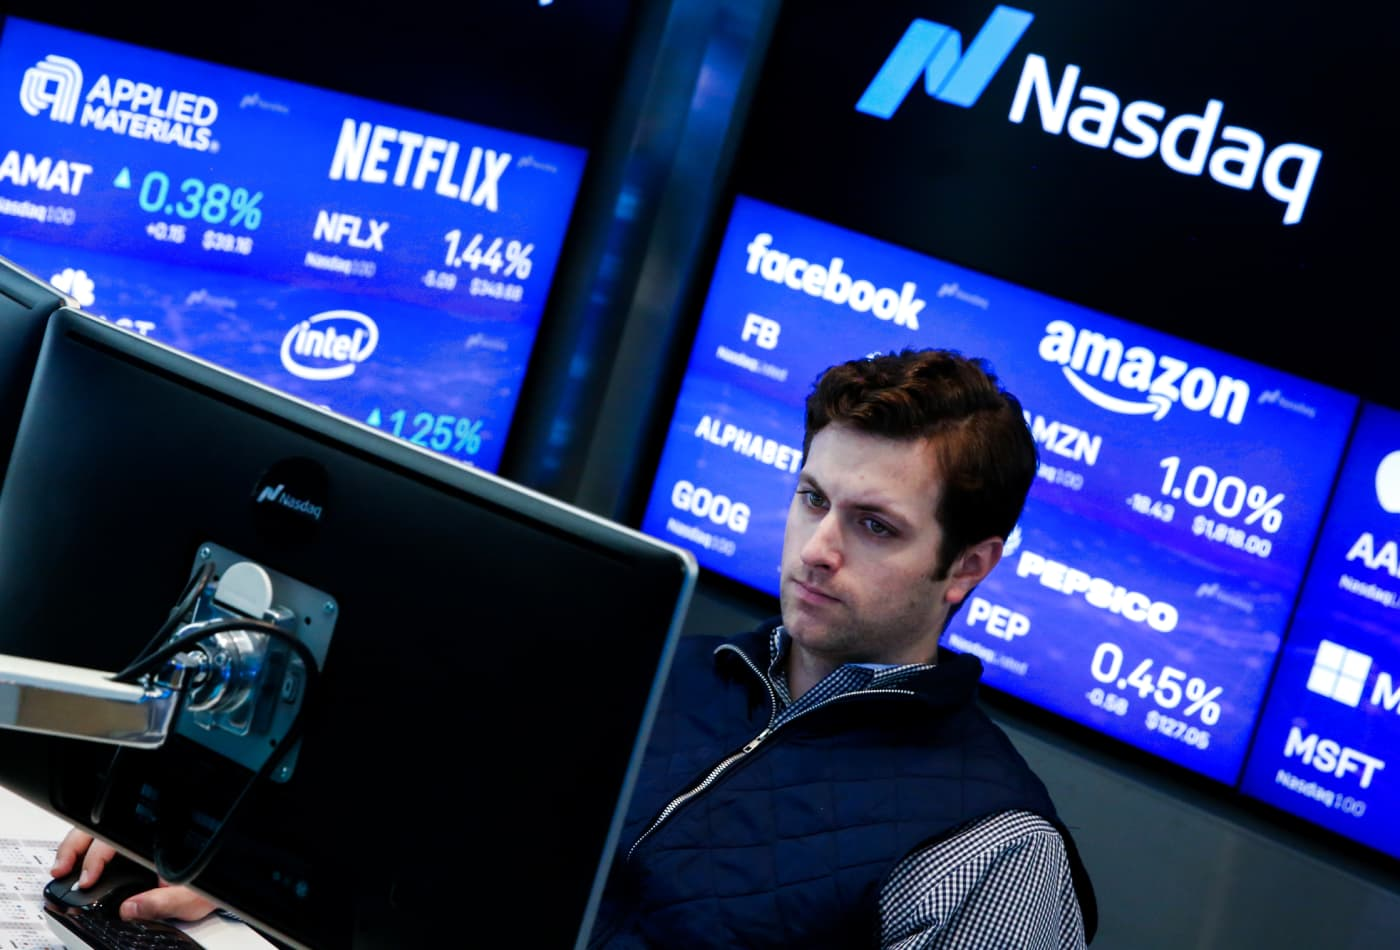 Facebook and Amazon hit records, but not all FAANG stocks have kept up